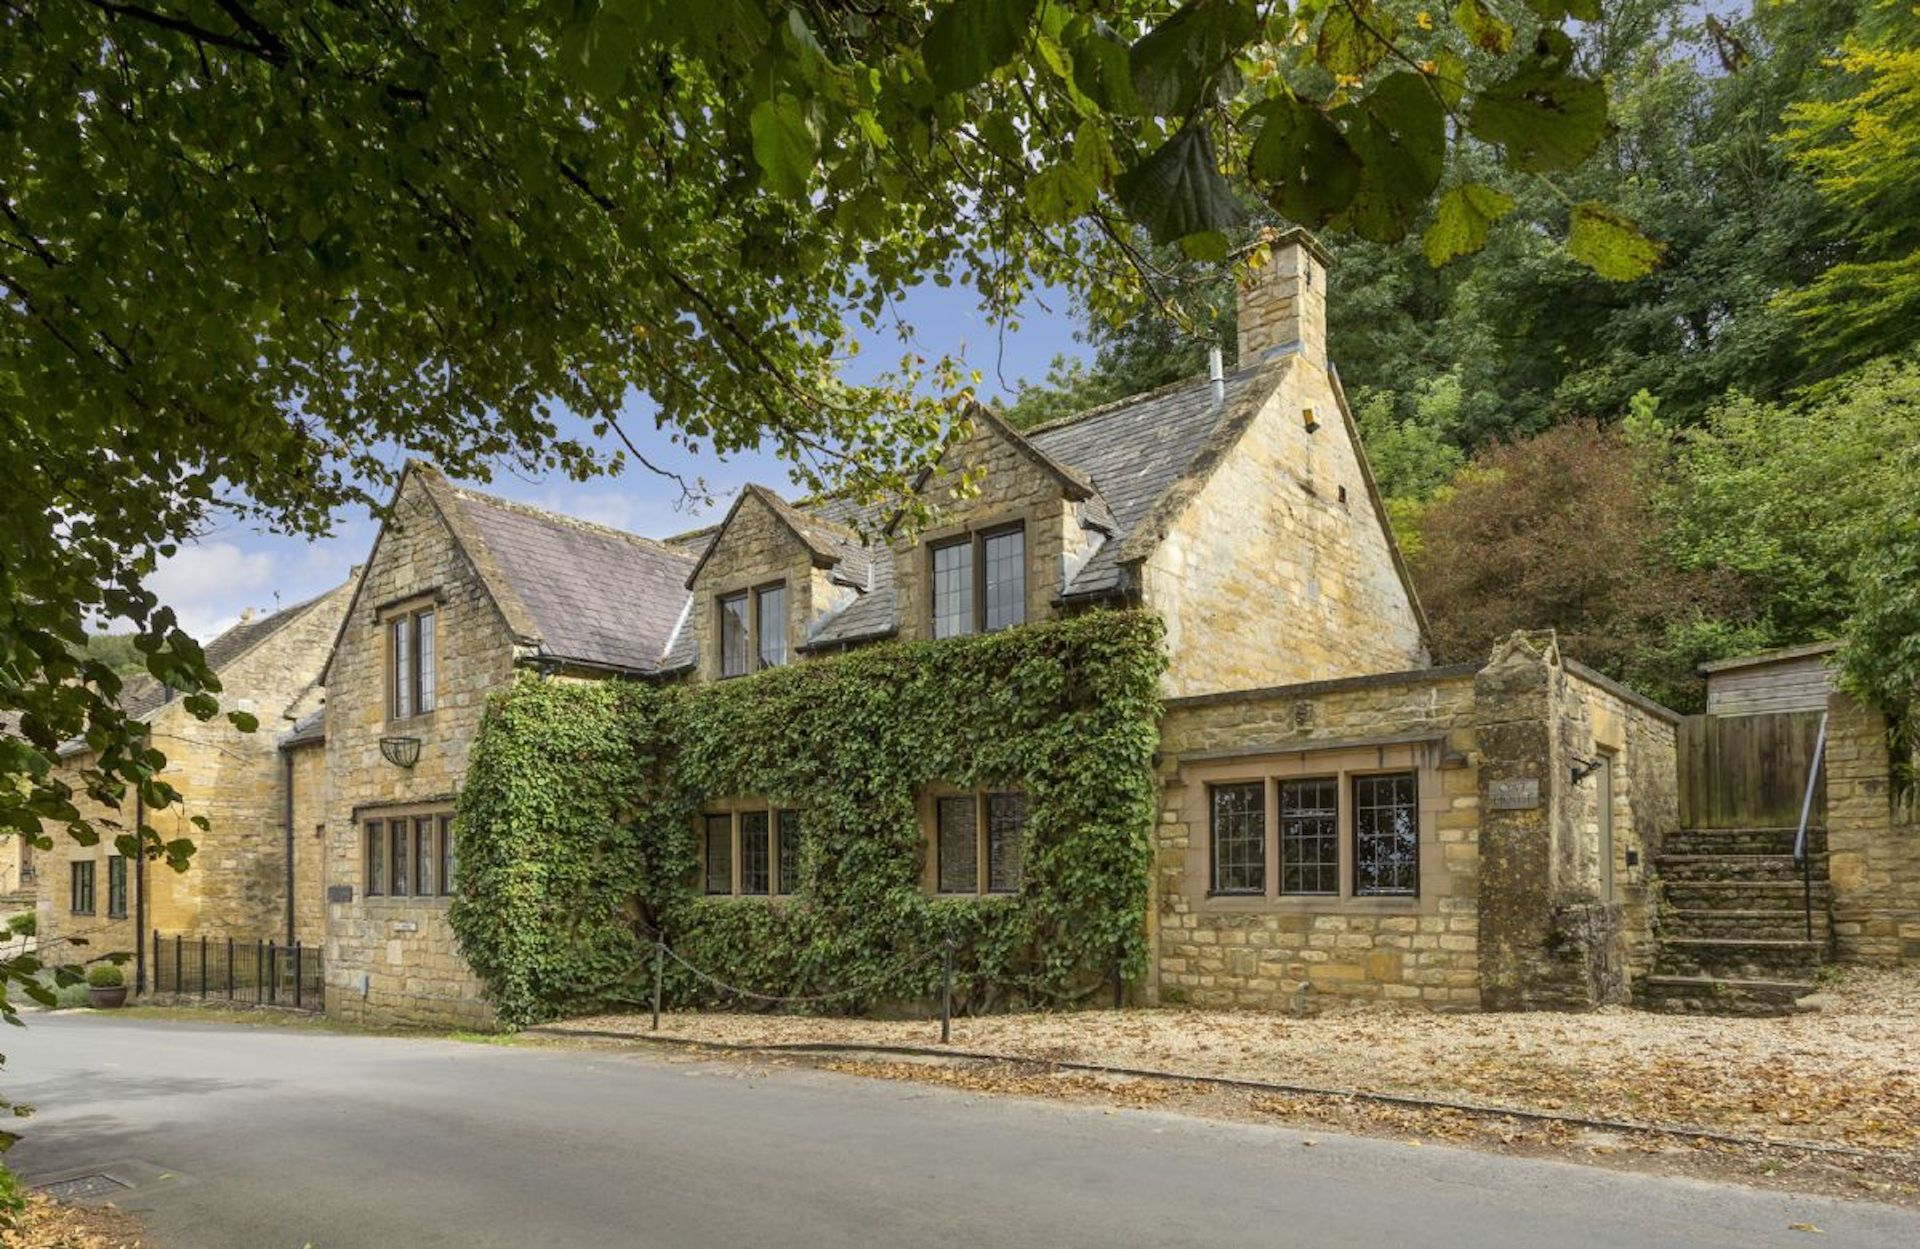 Oat House A Cotswold Country Cottage In 2020 Country Cottage Cotswolds Cottage Cottage